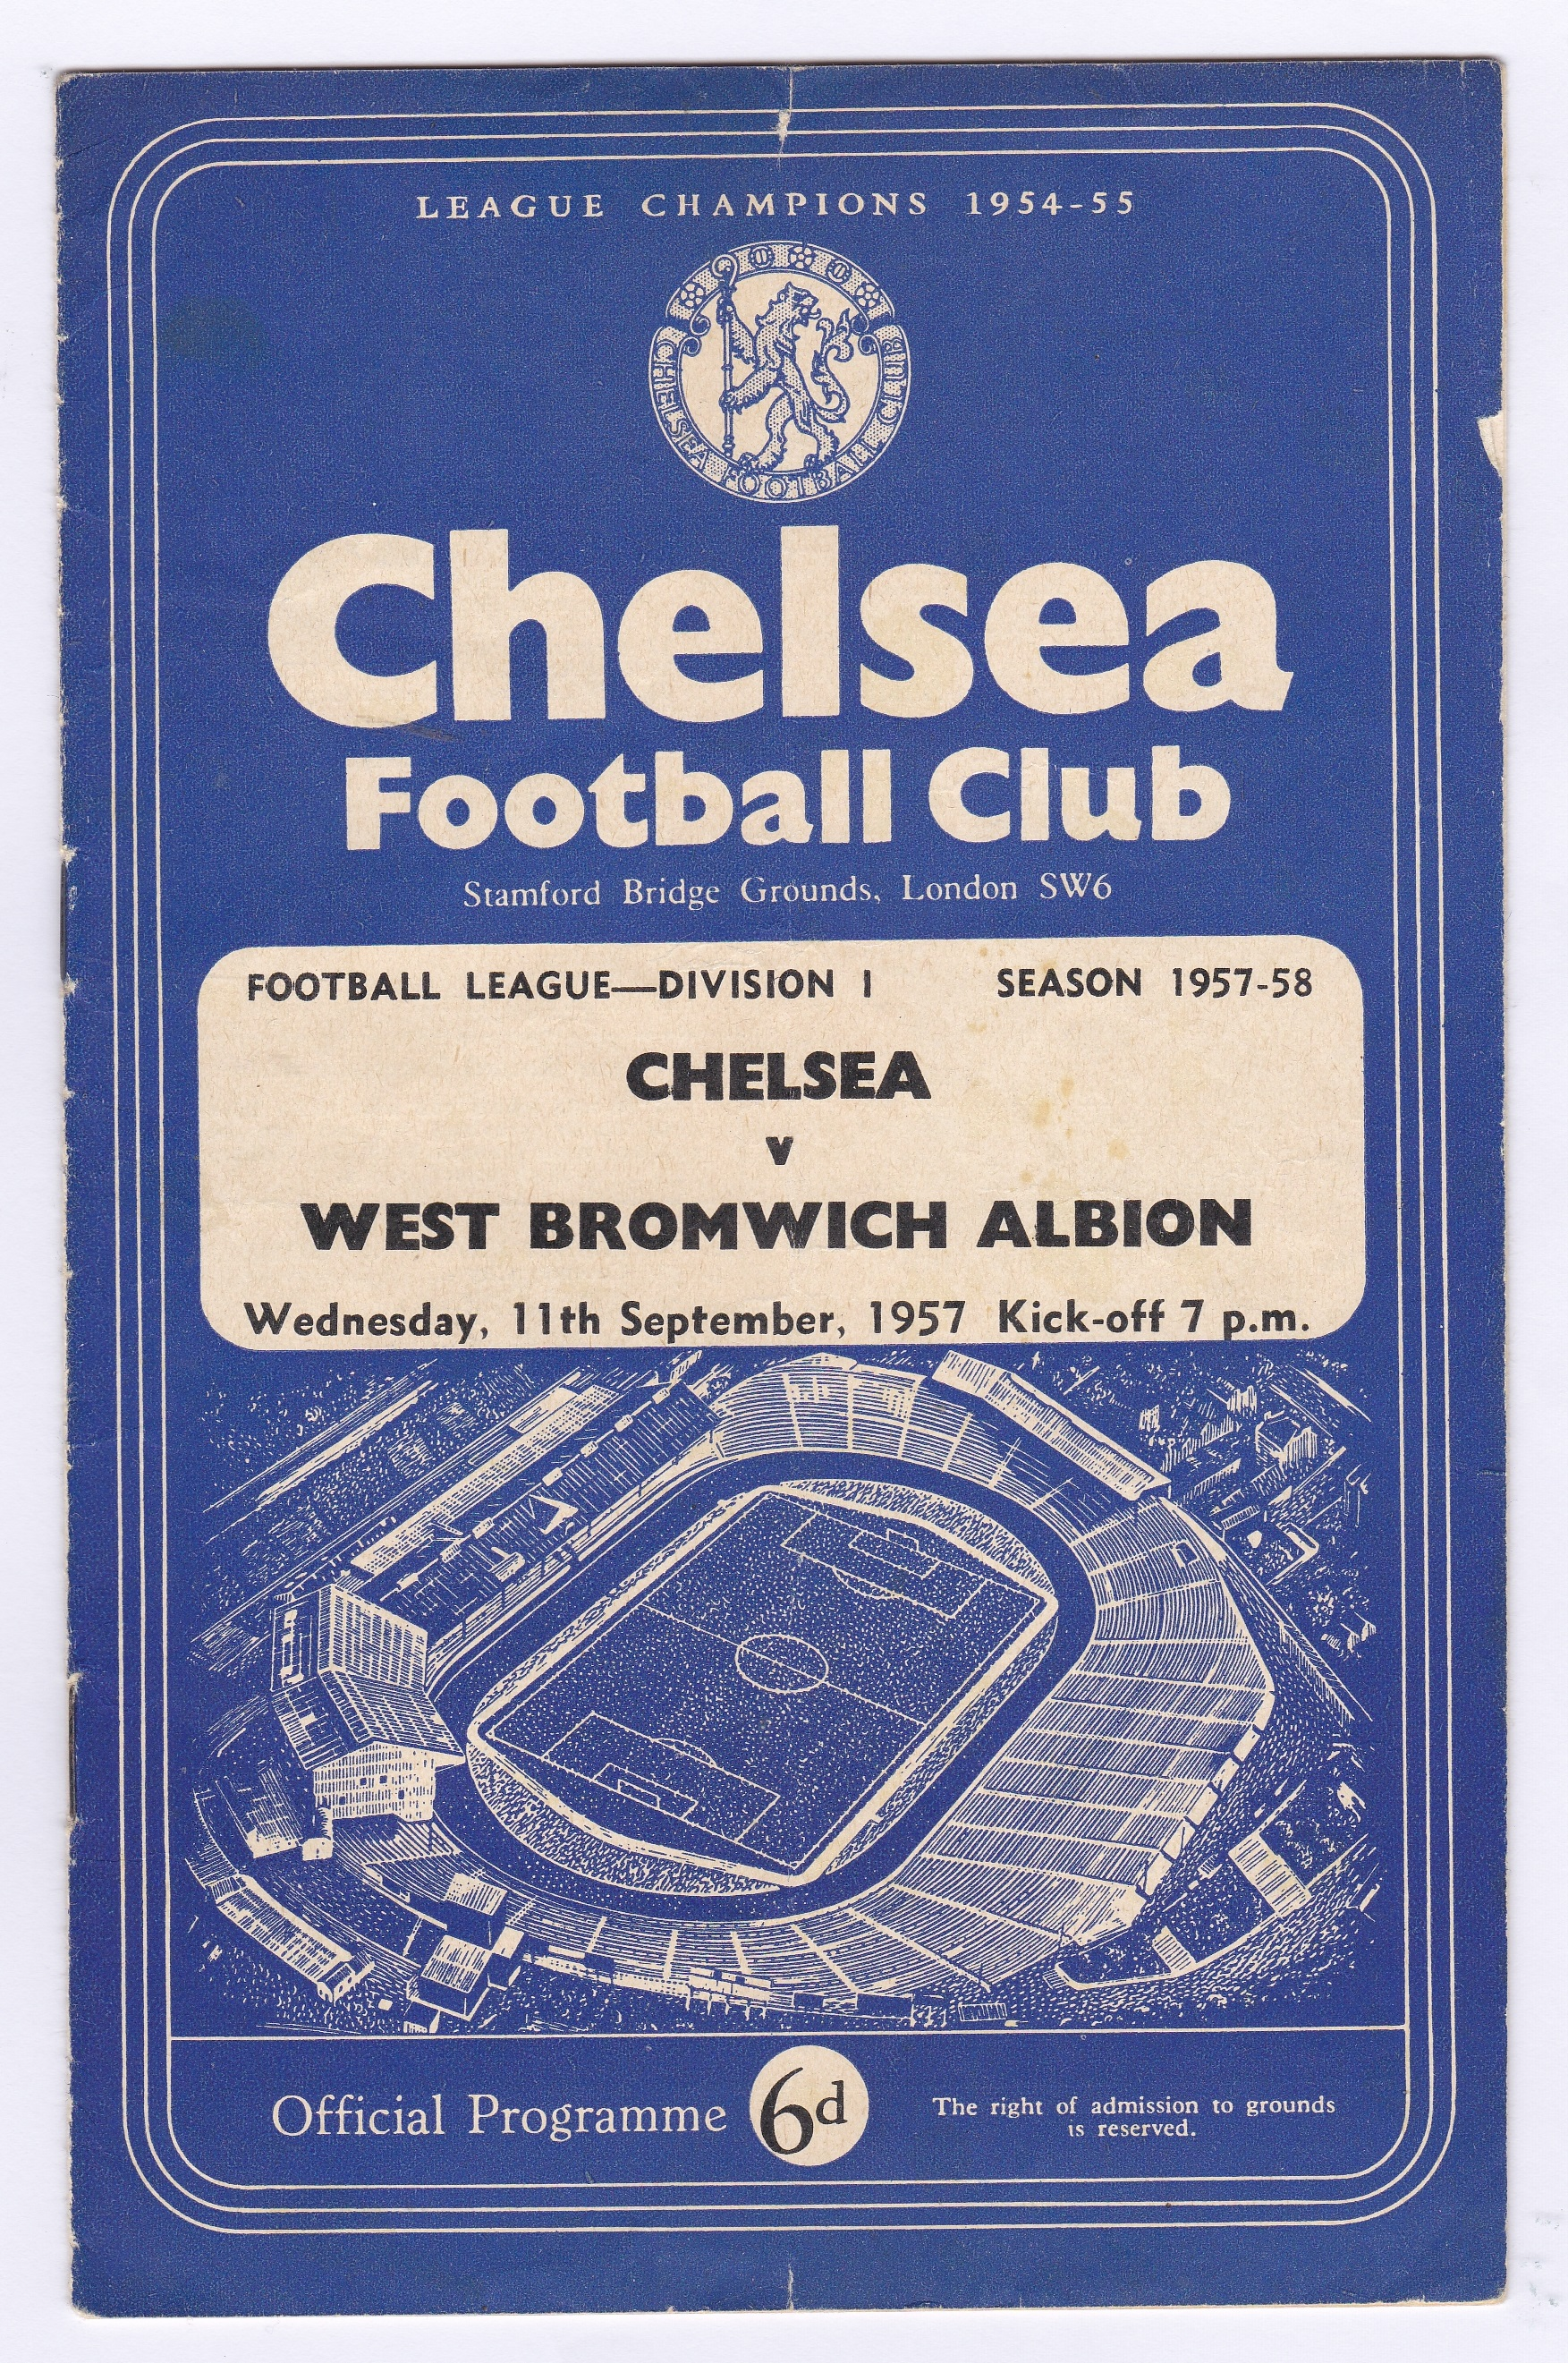 Chelsea v West Bromwich Albion 1957 September 11th vertical crease